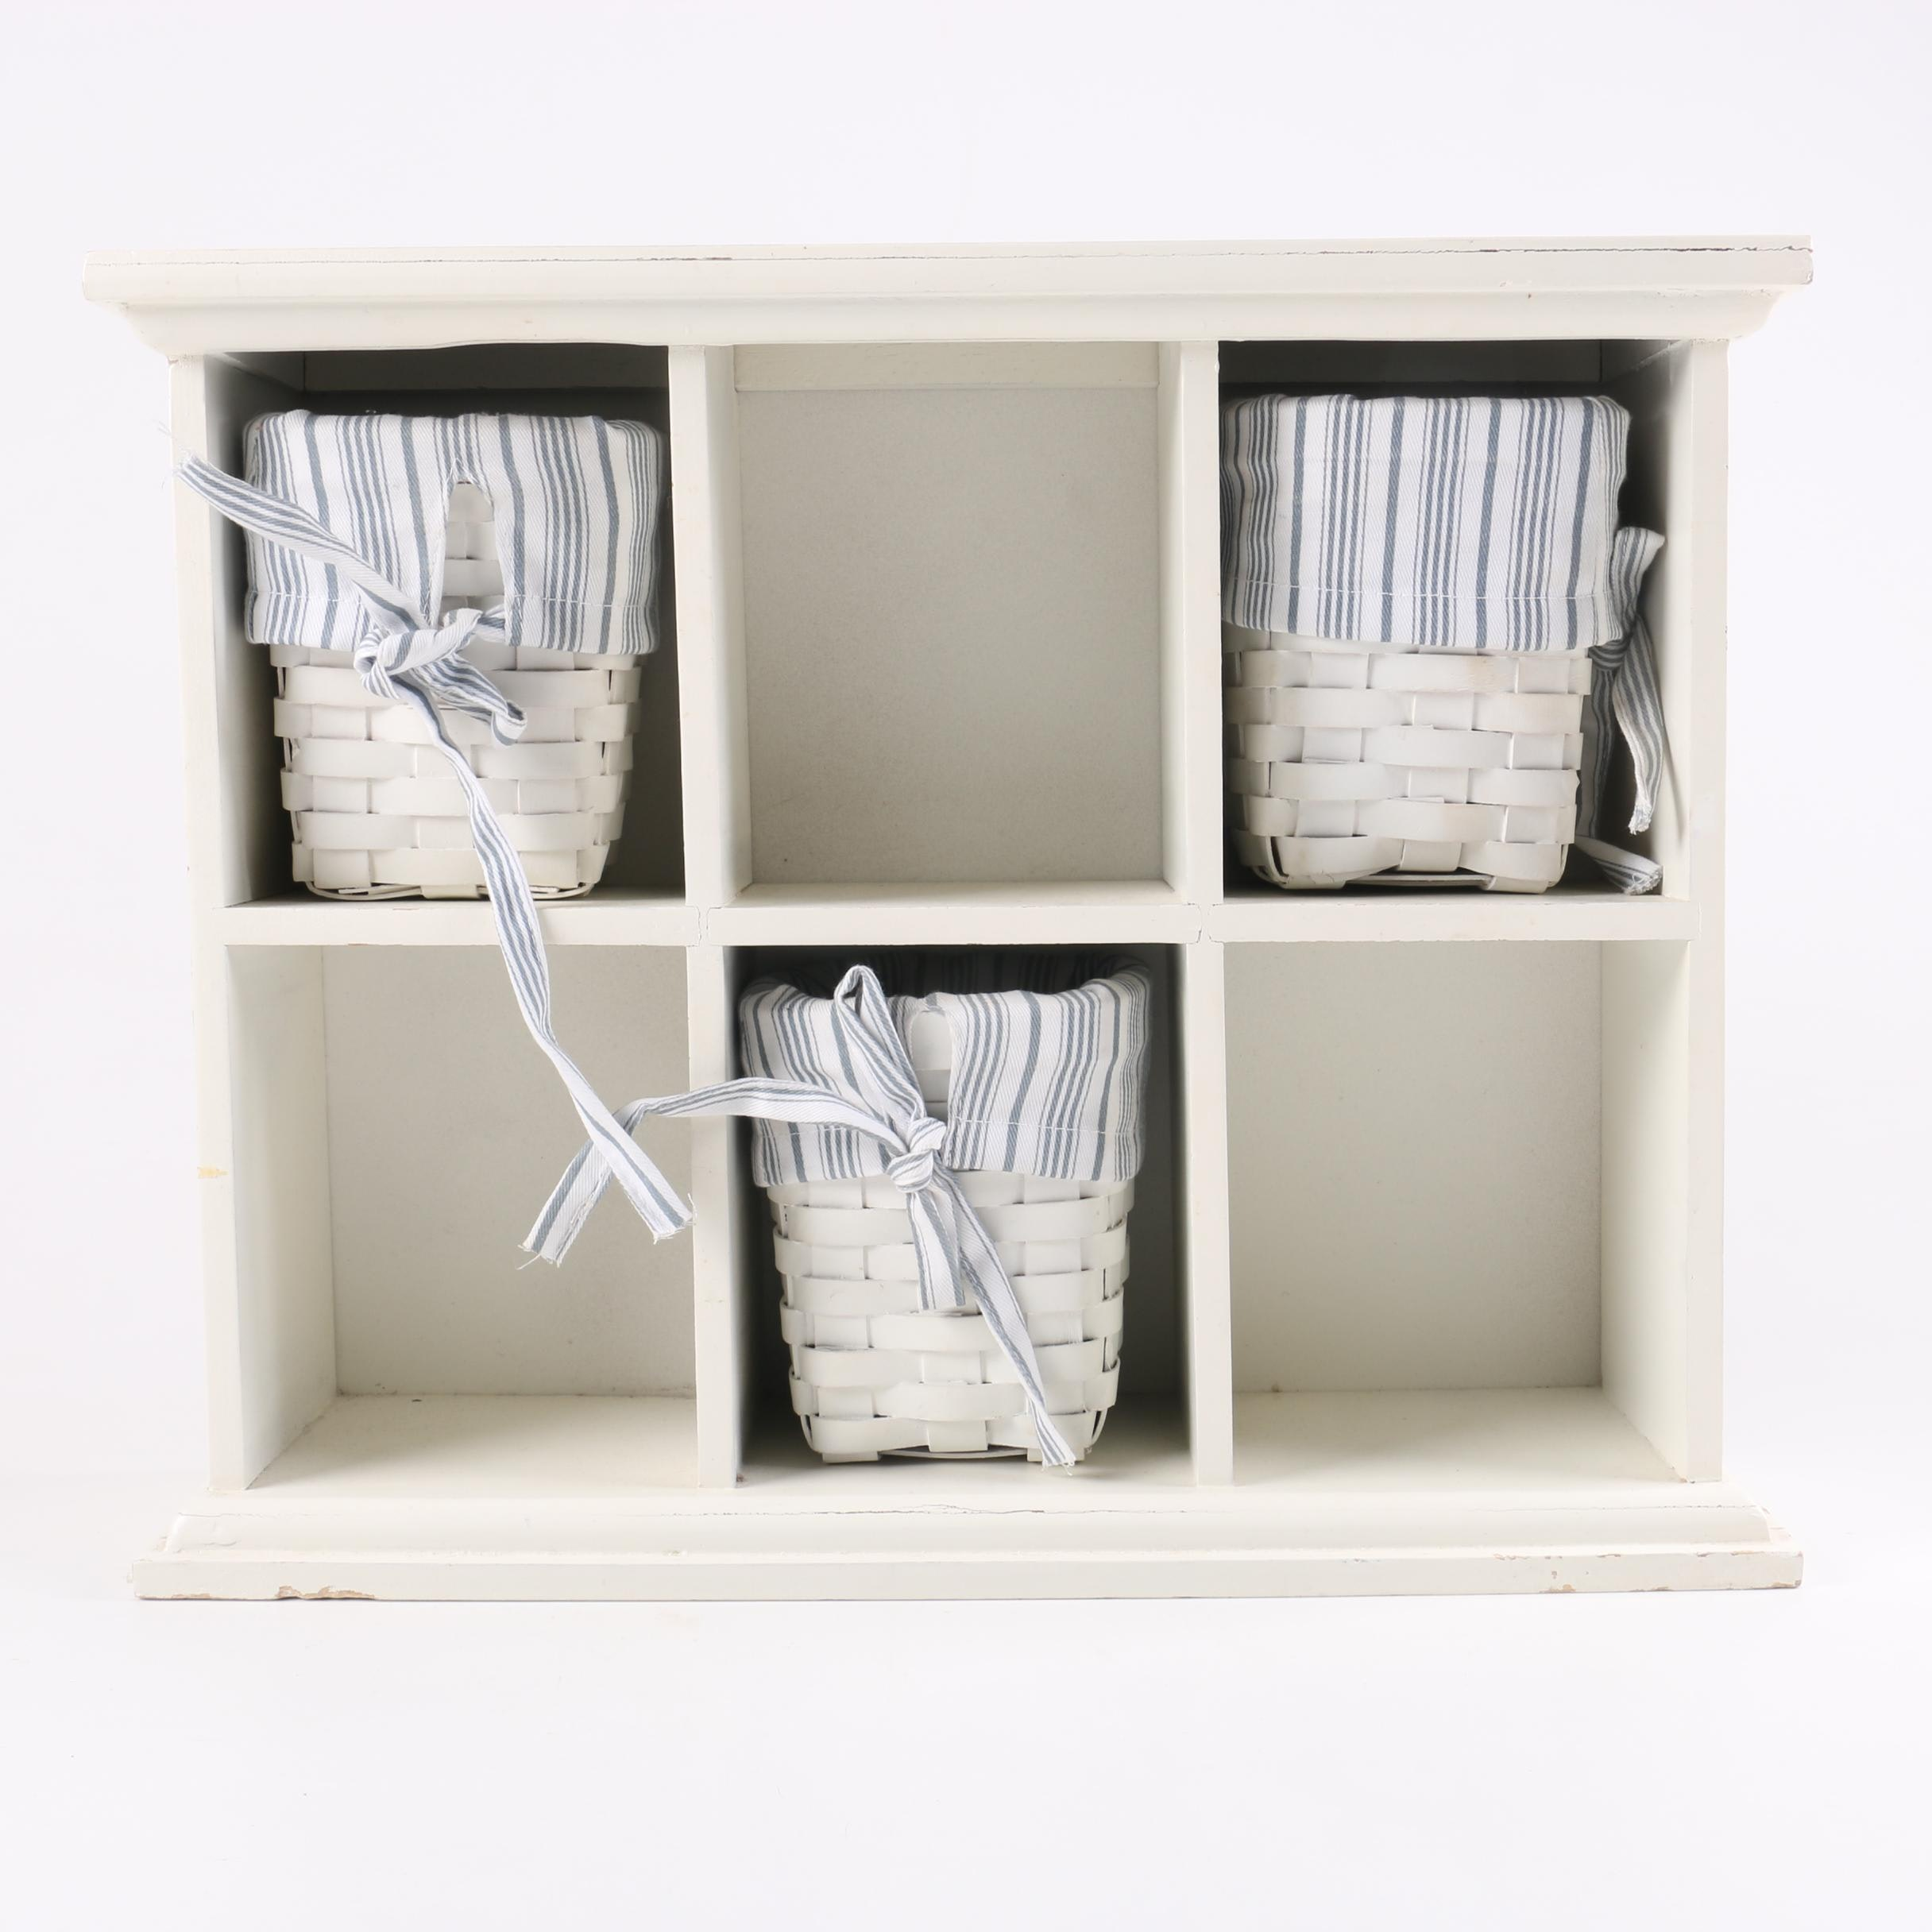 Painted Wooden Cabinet with Baskets in White